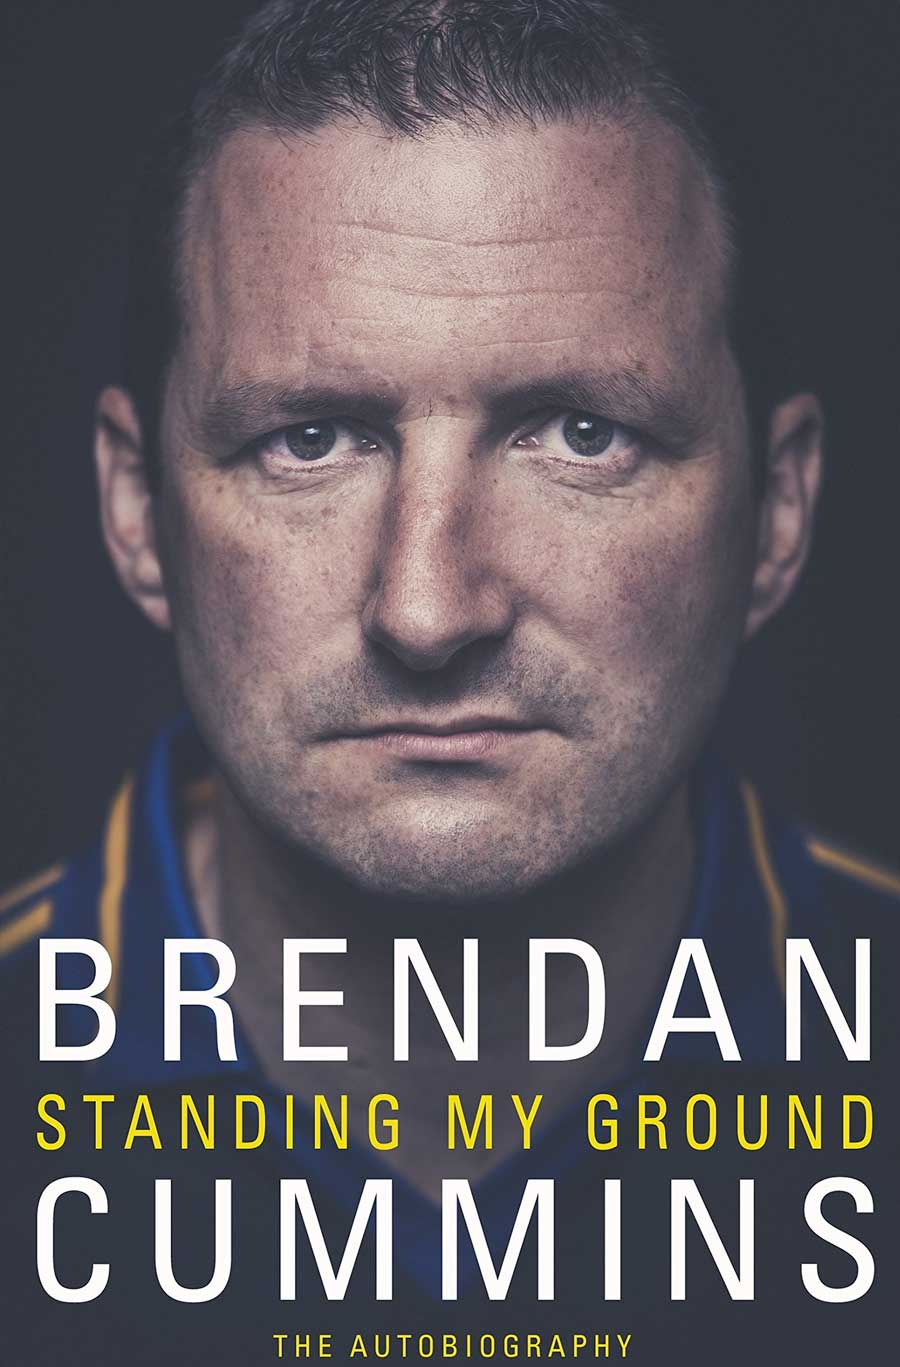 Brendan Cummins: Standing My Ground